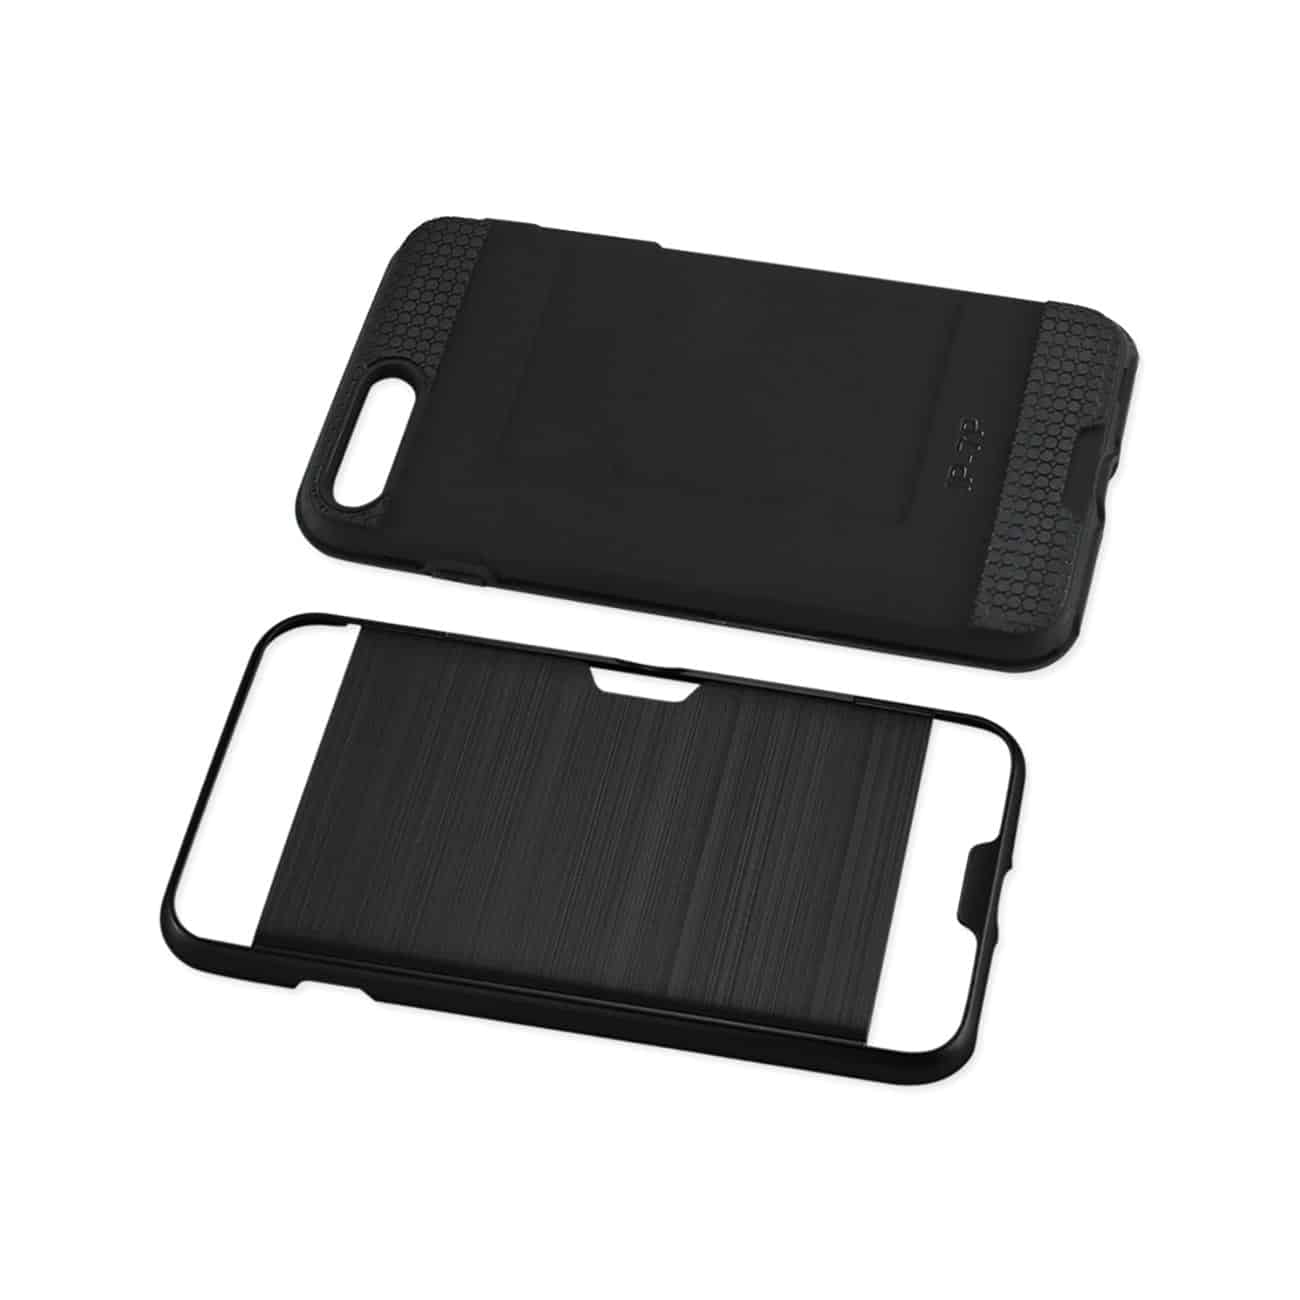 iPhone 8 Plus/ 7 Plus Slim Armor Hybrid Case With Card Holder In Black